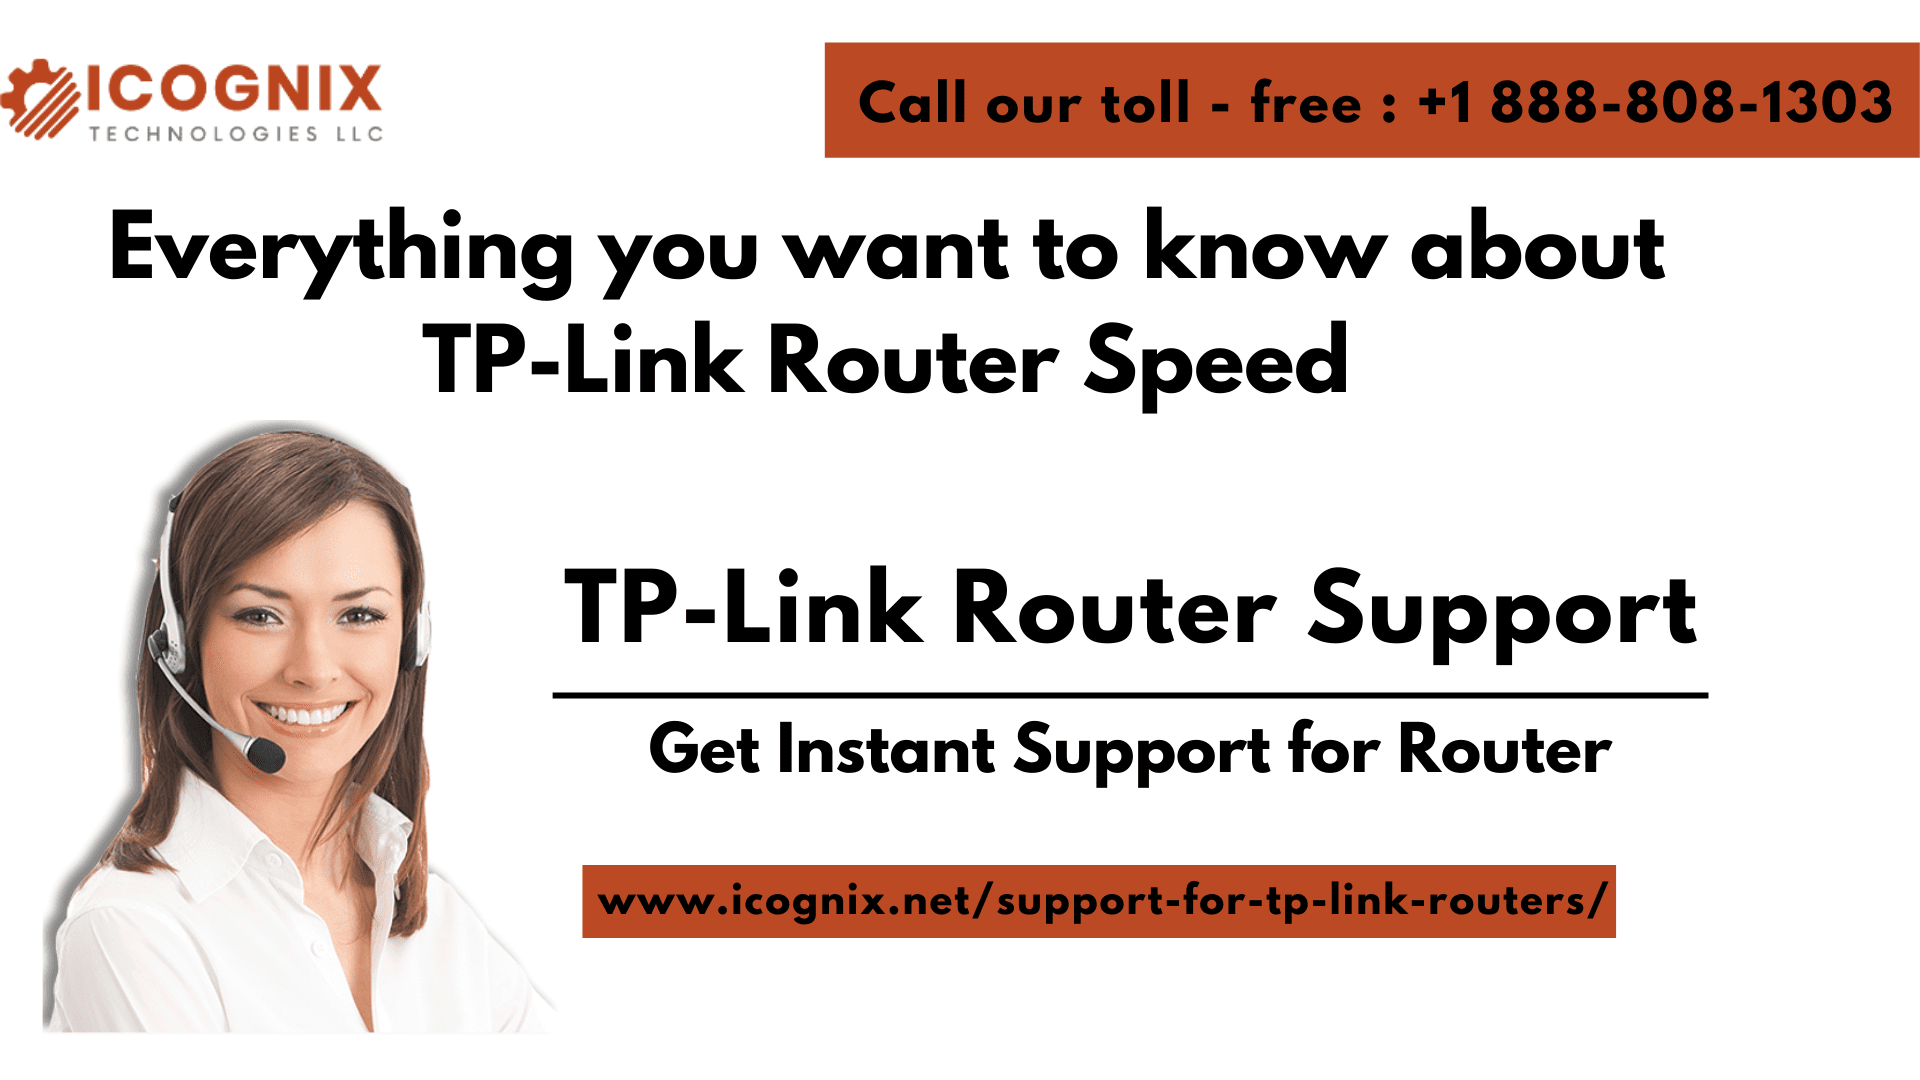 Everything you want to know about TP-Link Router Speed